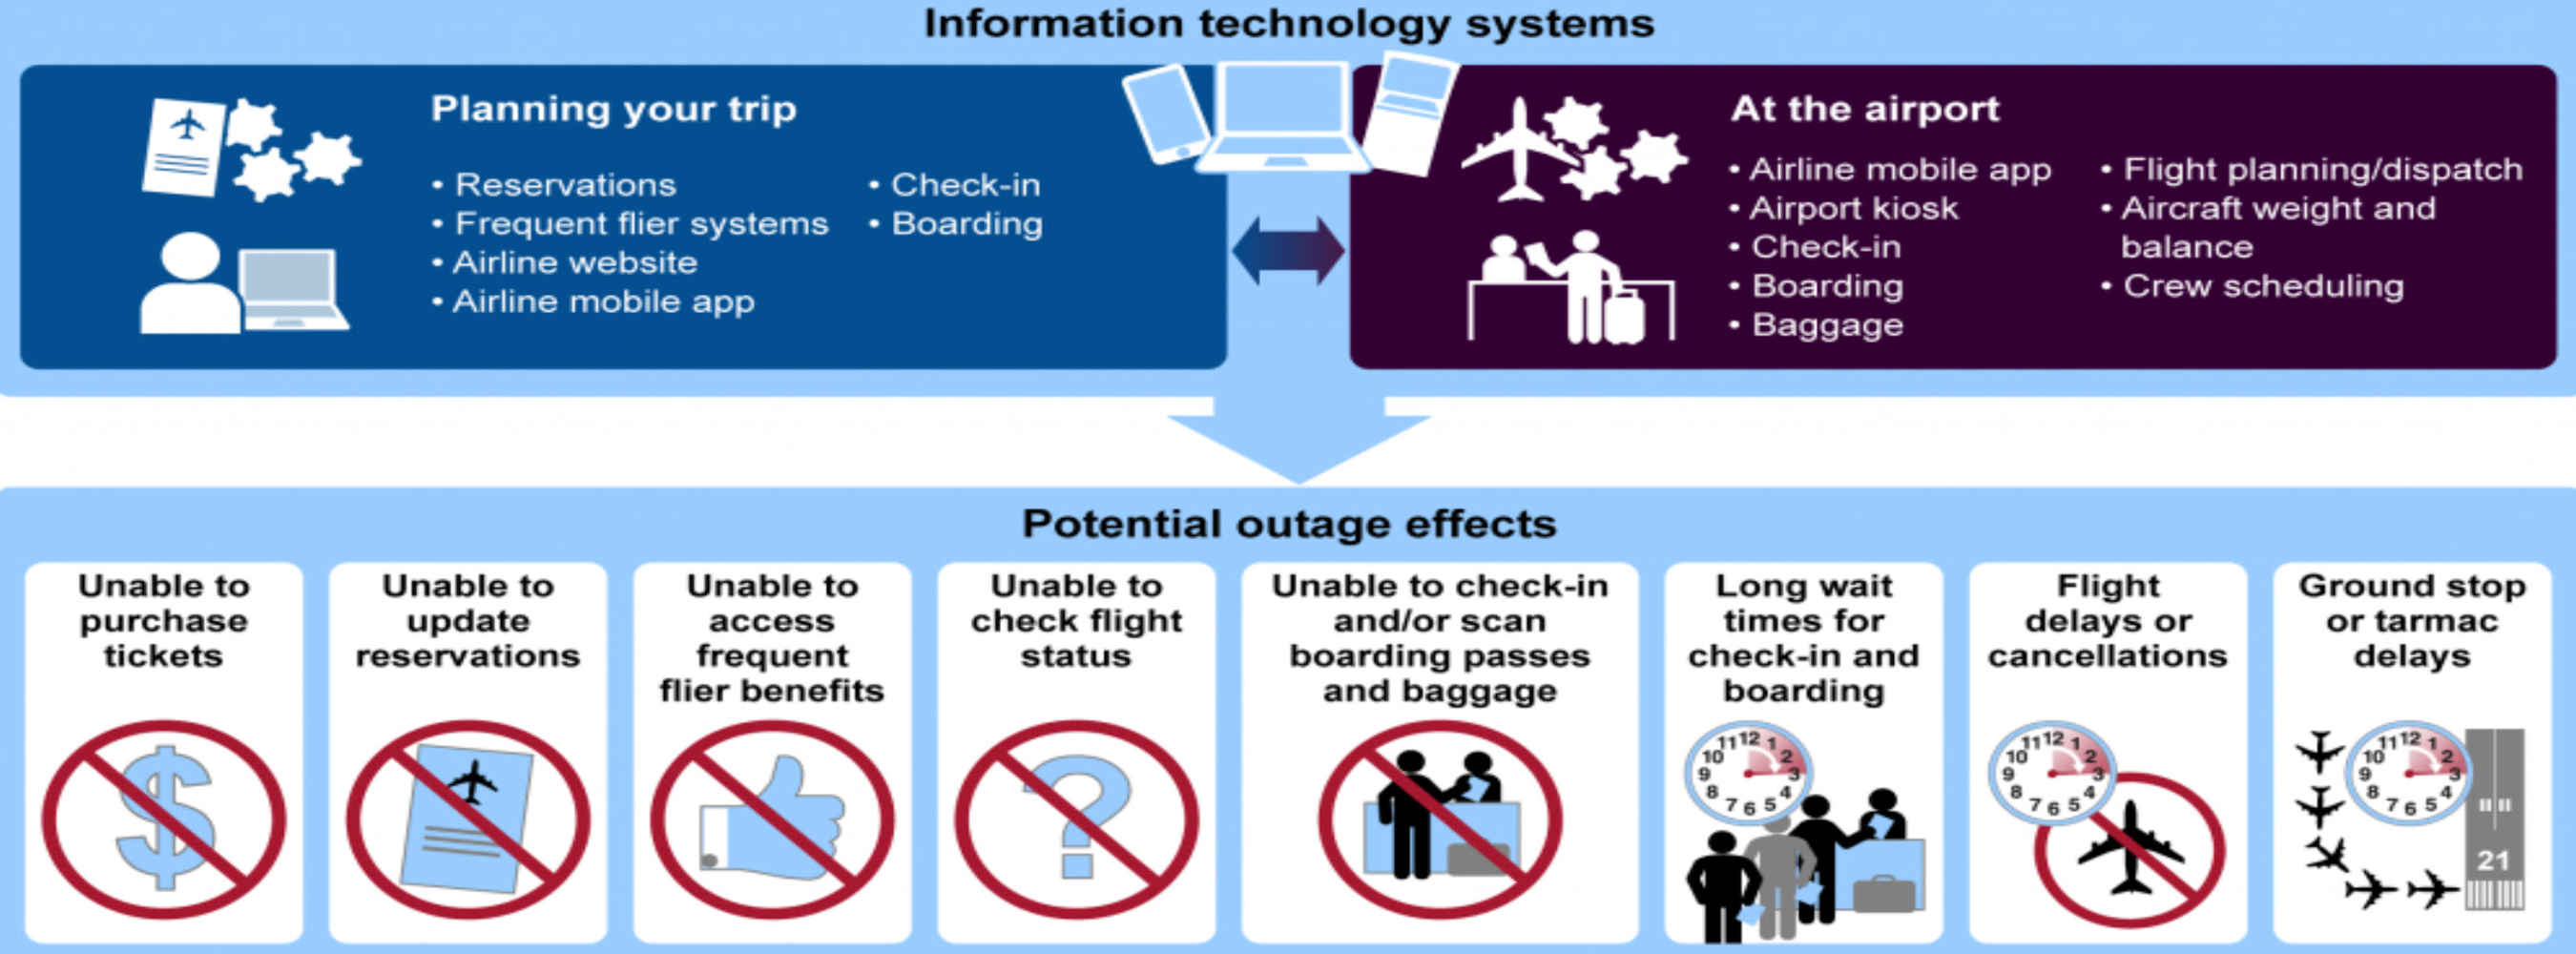 IT Outages in the Airline Industry, A New Report by the GAO